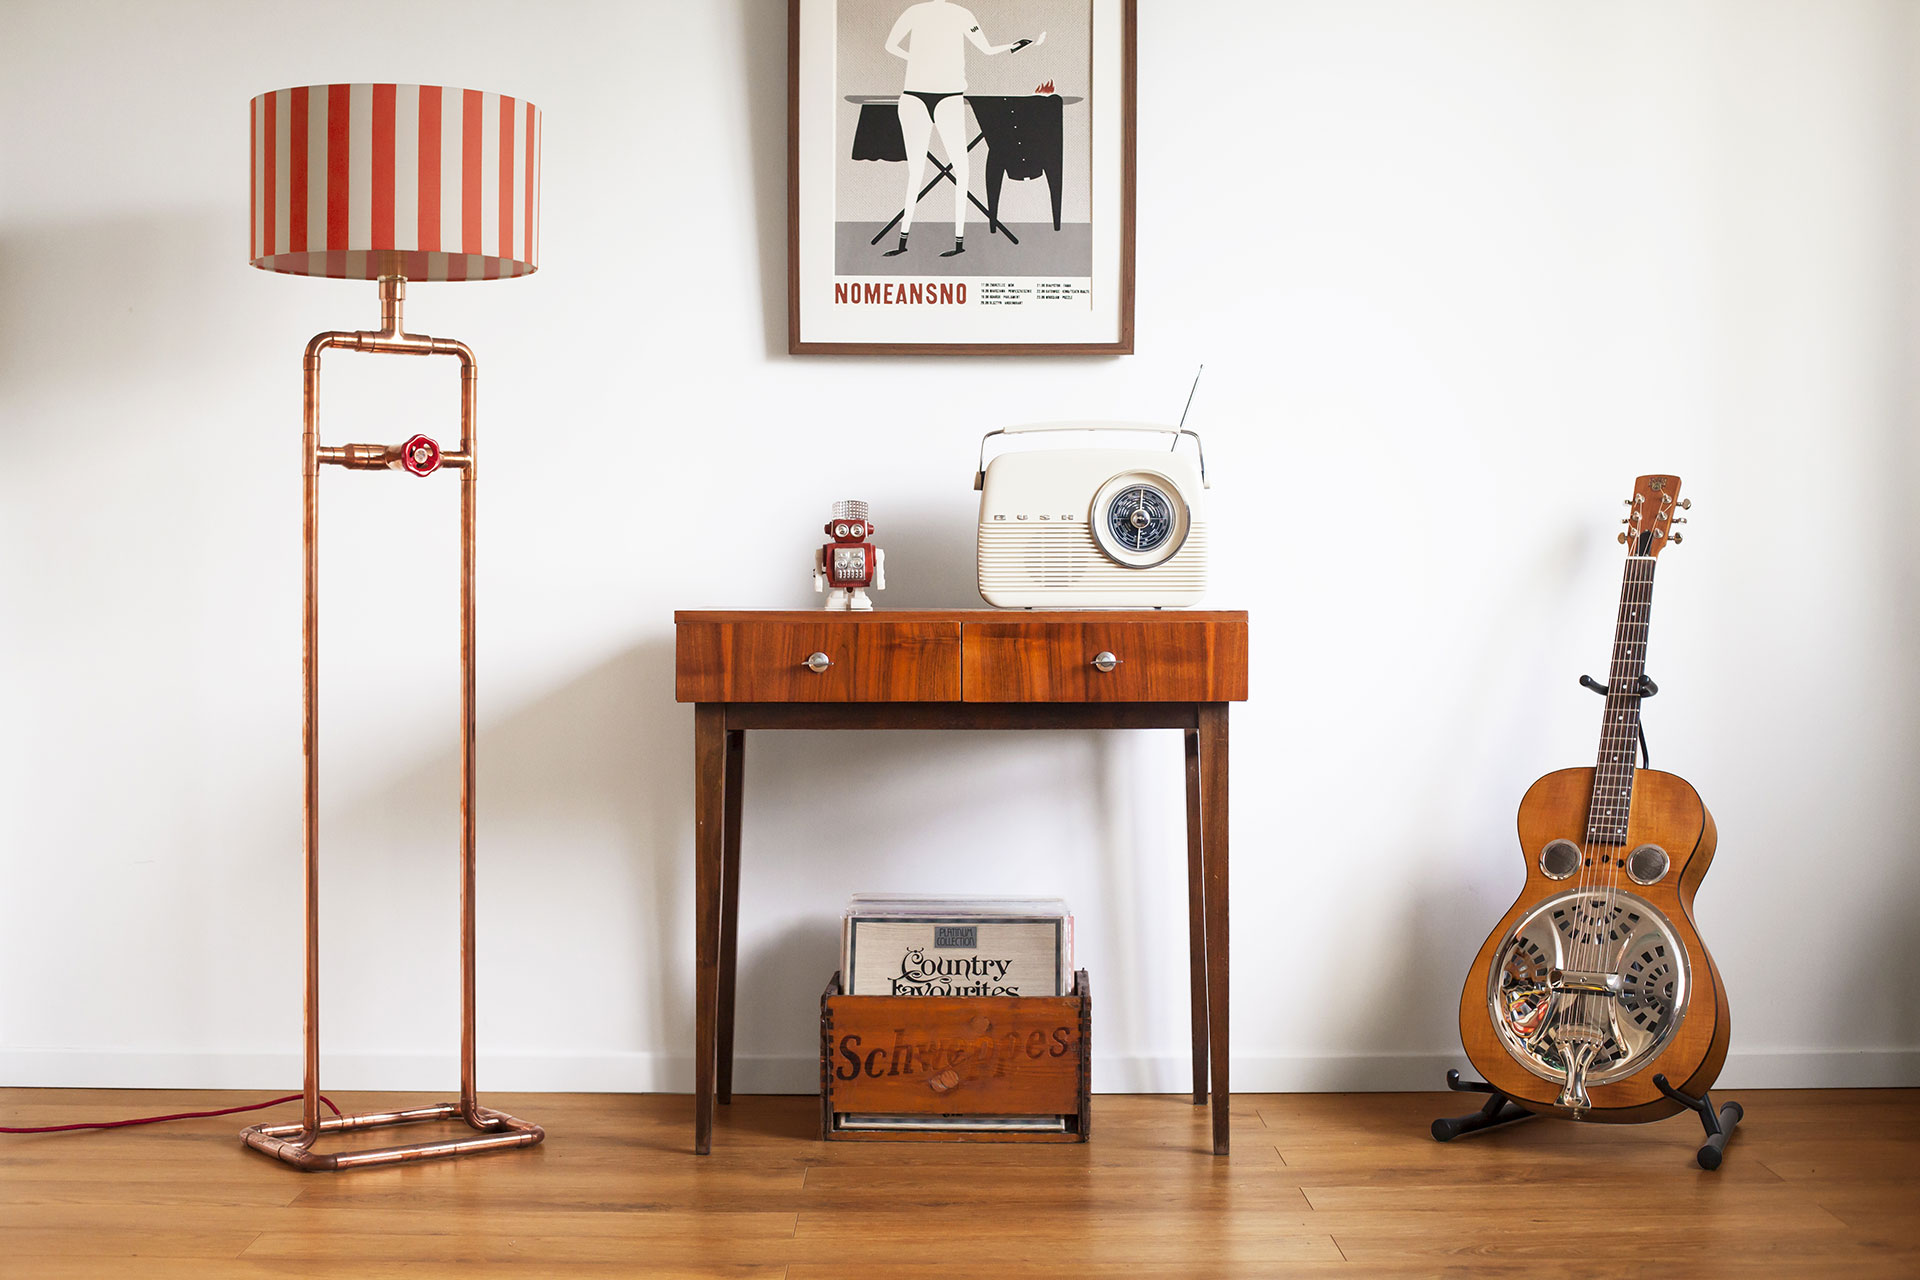 Industrial style copper tubing floor lamp with knob dimmer and stripe shade in cozy hip apartment